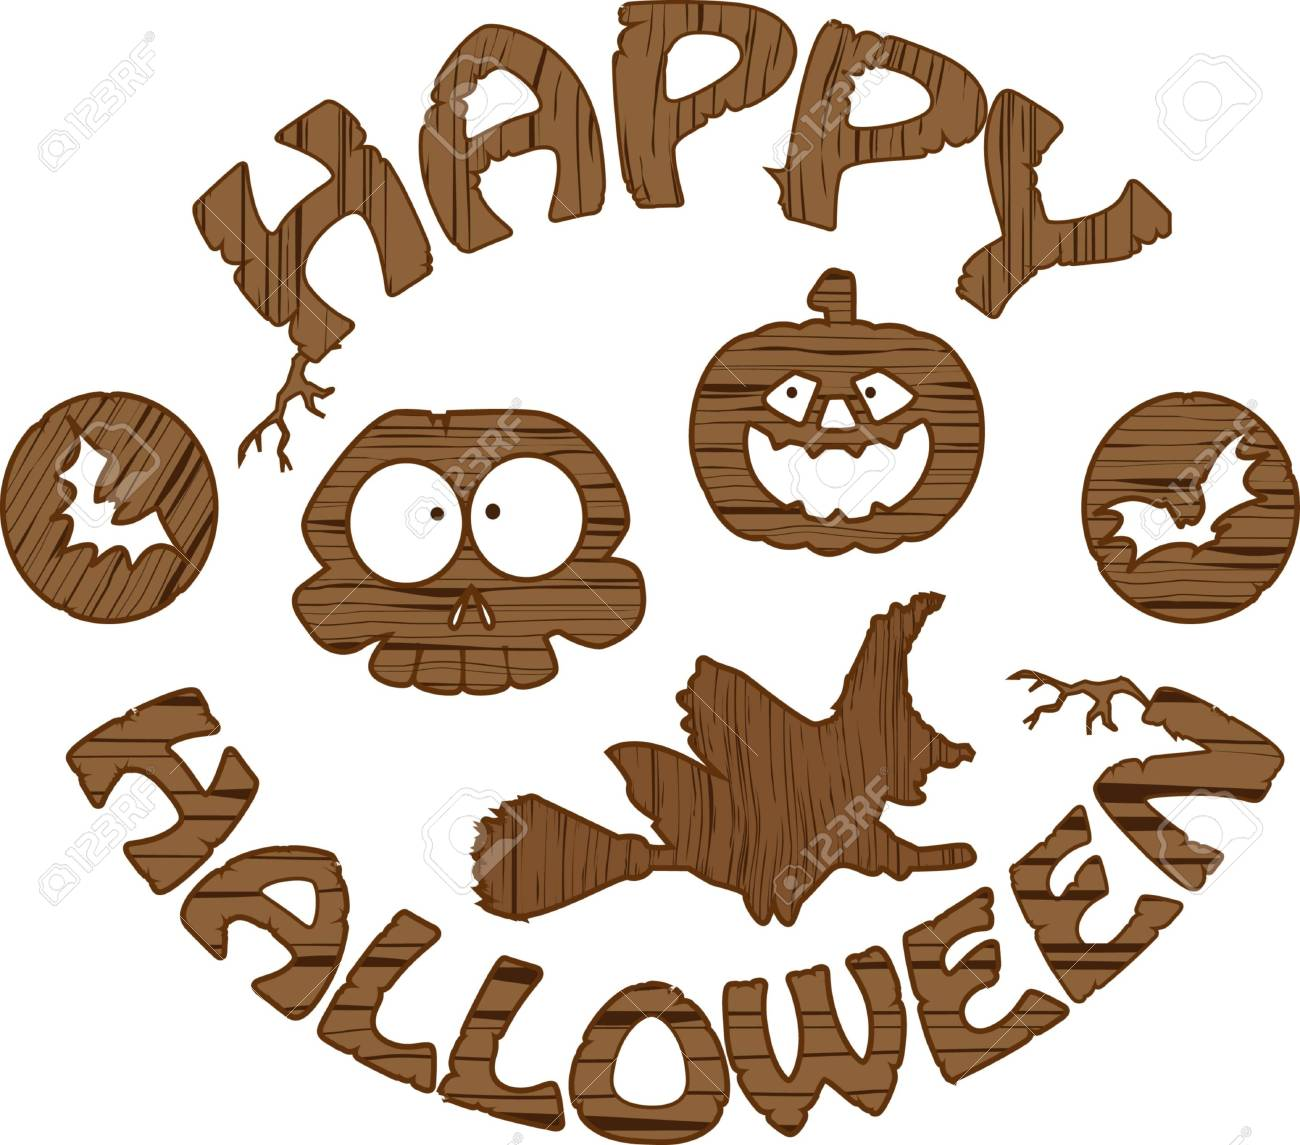 the Halloween  designs image Stock Photo - 7781930